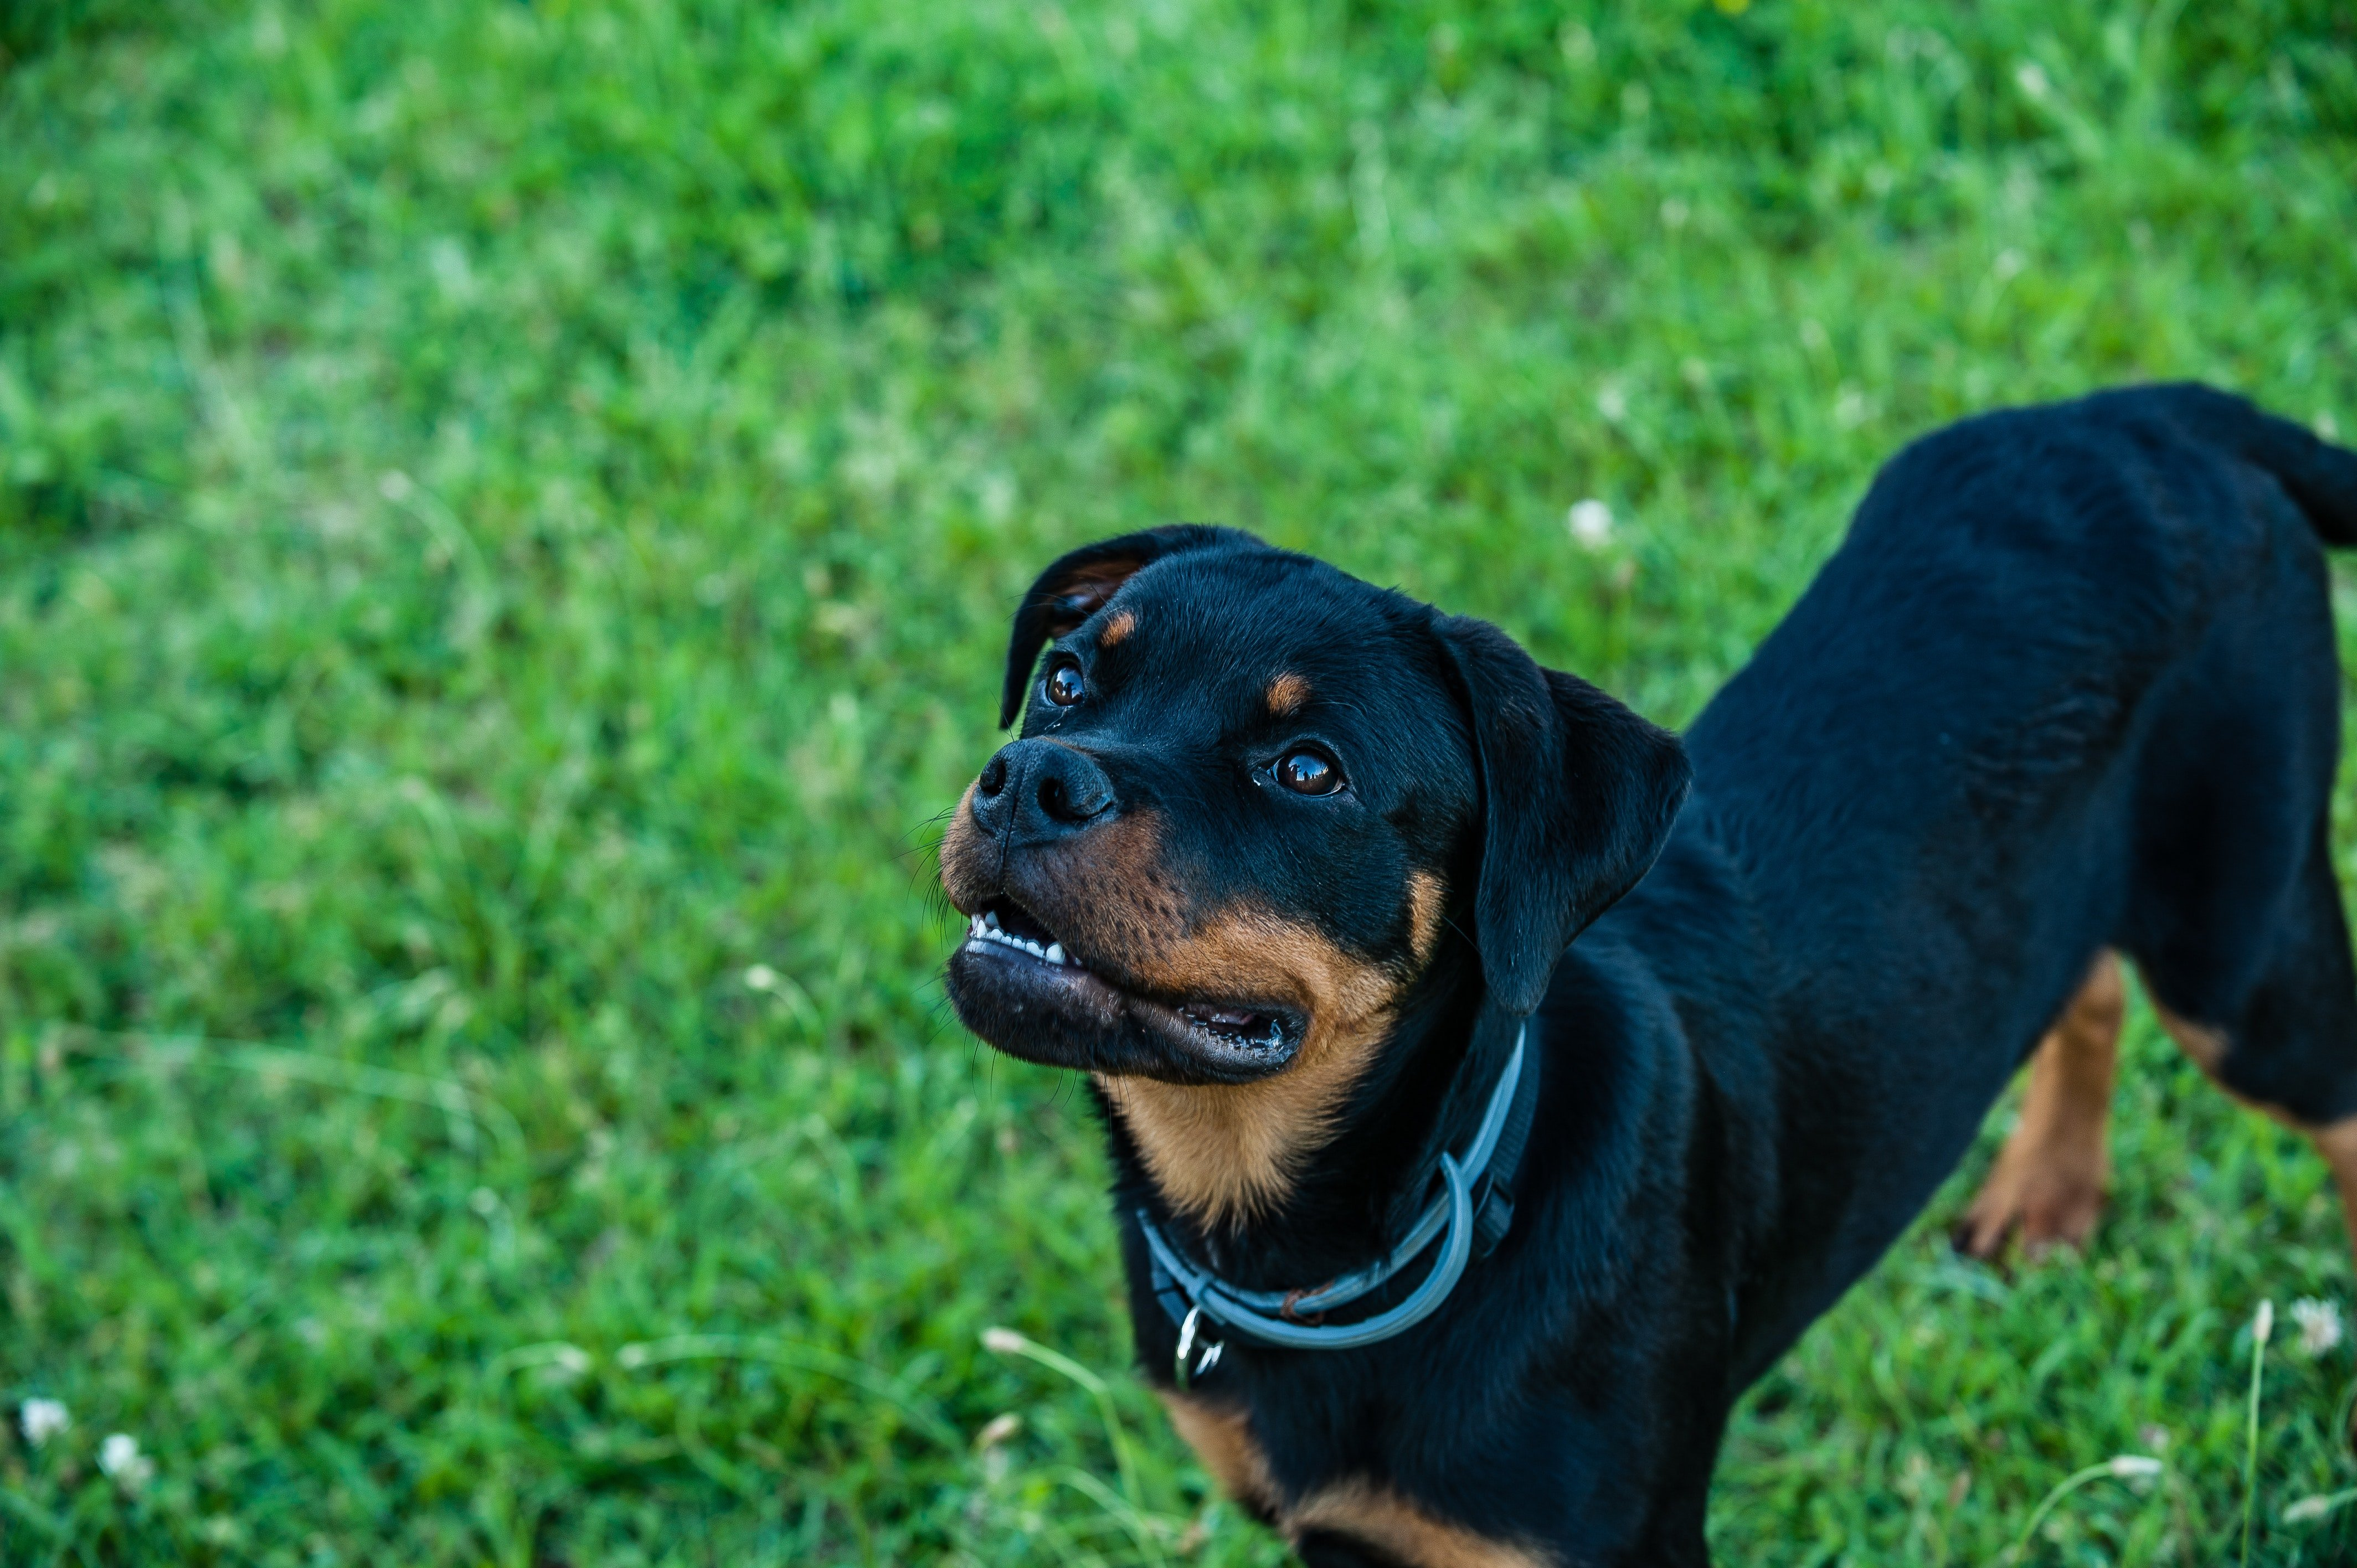 Pictured - An image of an attentive Rottweiler on green grass meadow | Source: Pexels